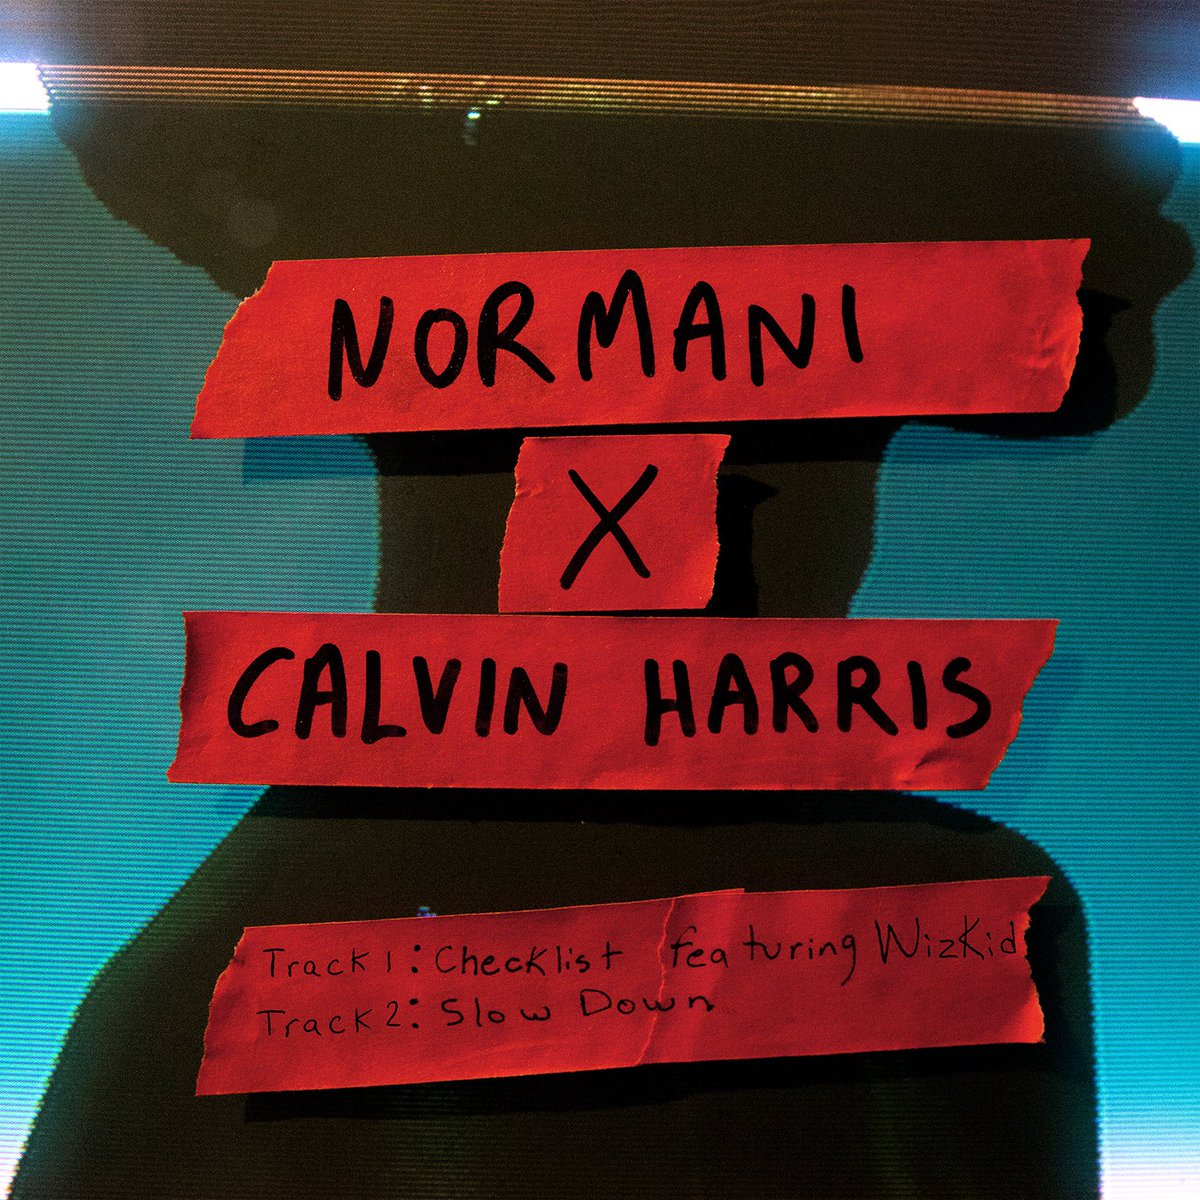 #NormaniXCalvinHarris Track 1: Checklist (featuring WizKid) Track 2: Slow Down  OUT NOW. https://t.co/gTge0tjsQv